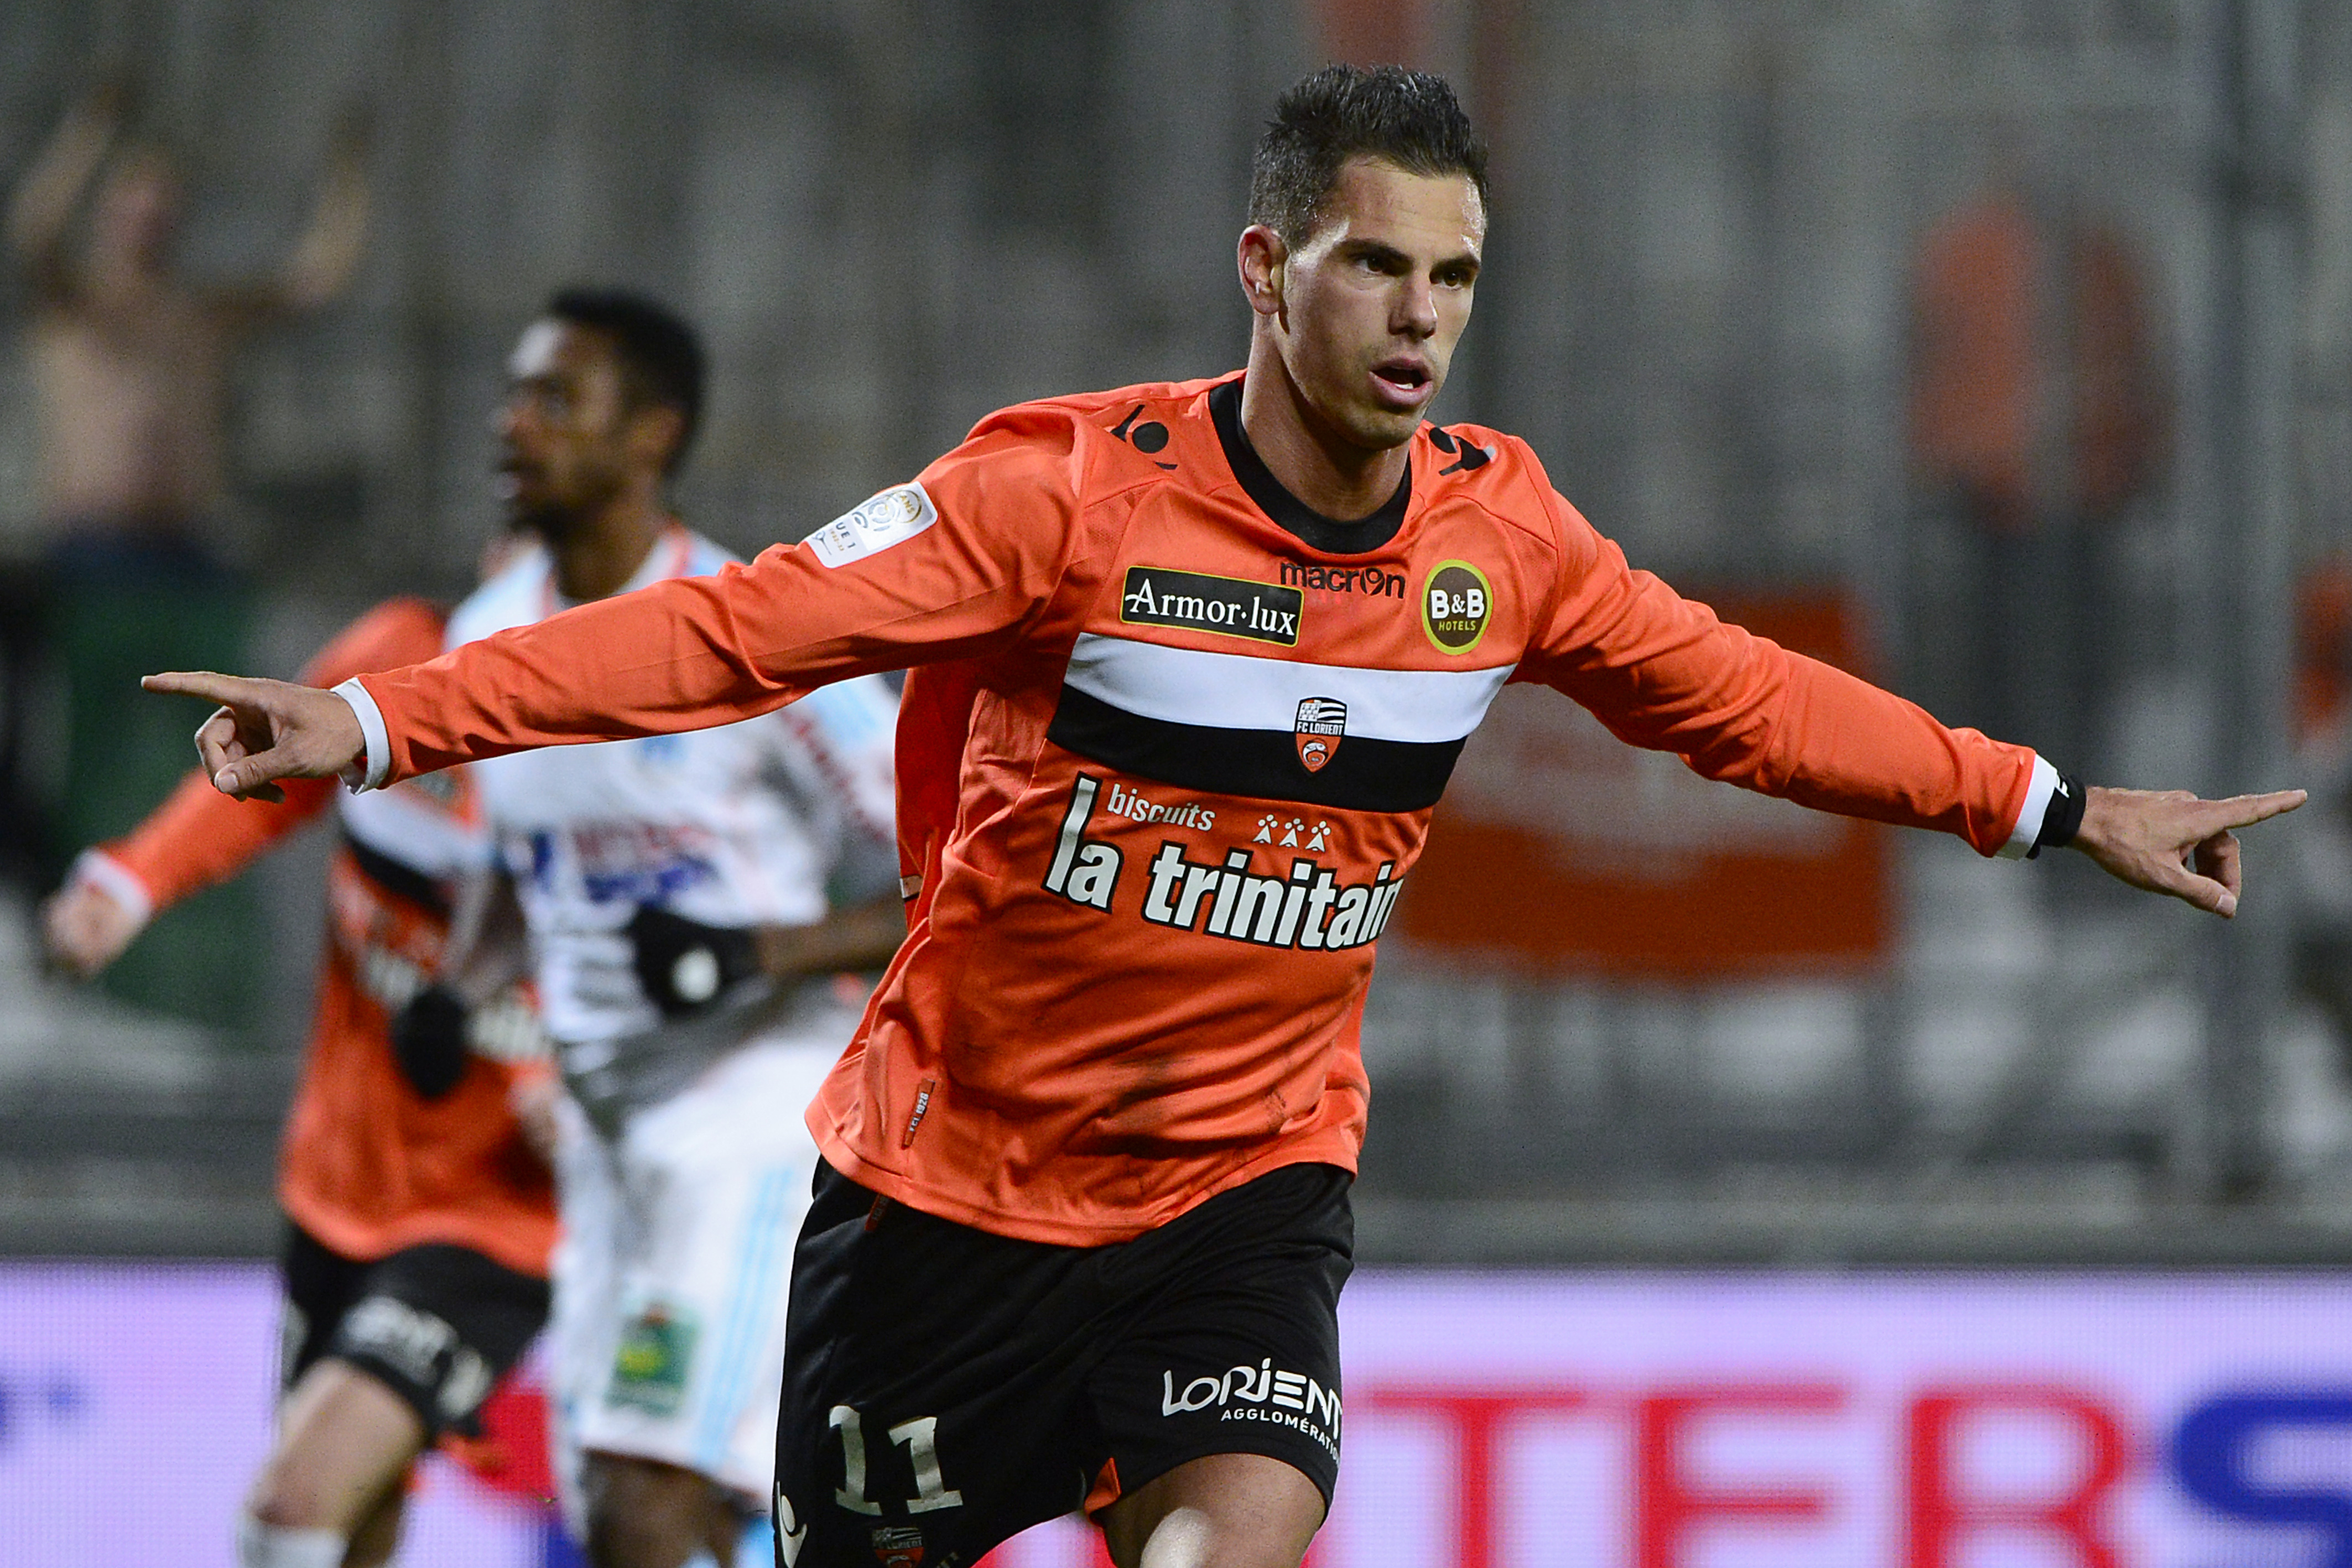 Lorient's French forward Jeremie Aliadiere celebrates after scoring during the French L1 football match between Olympique de Marseille (OM) and Lorient at the Velodrome stadium in Marseille on December 9, 2012. AFP PHOTO / BORIS HORVAT (Photo credit should read BORIS HORVAT/AFP/Getty Images)